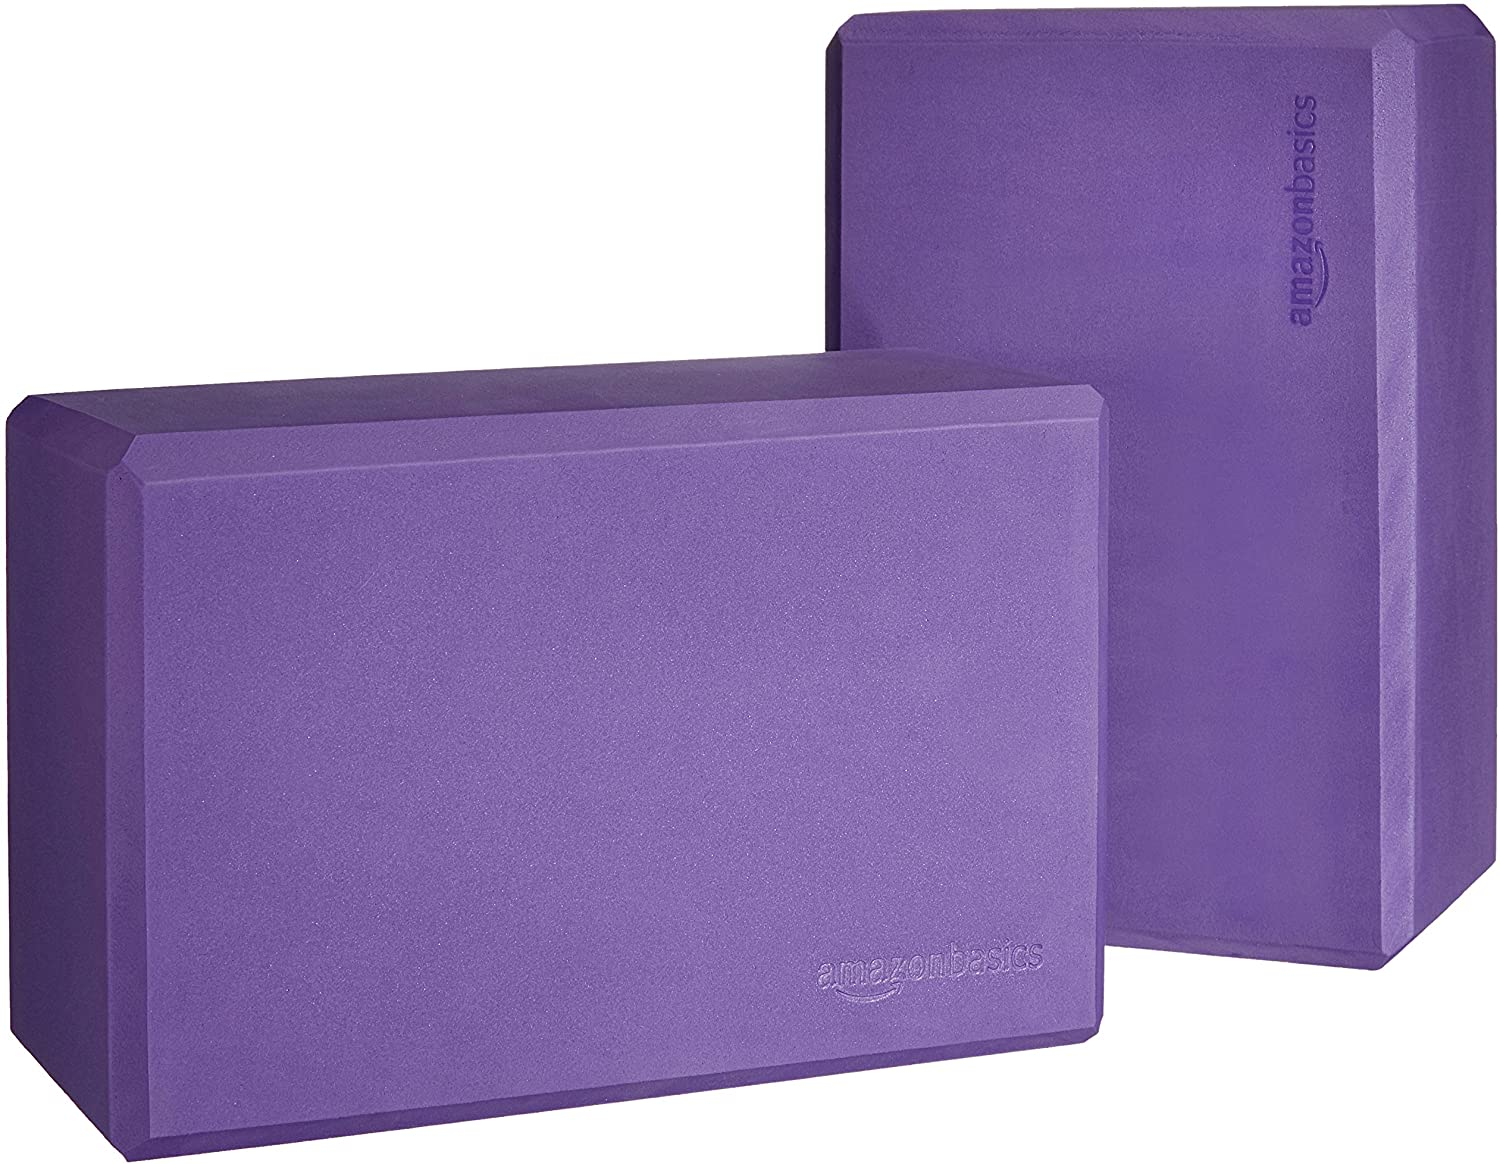 Foam Yoga Blocks, Set of 2